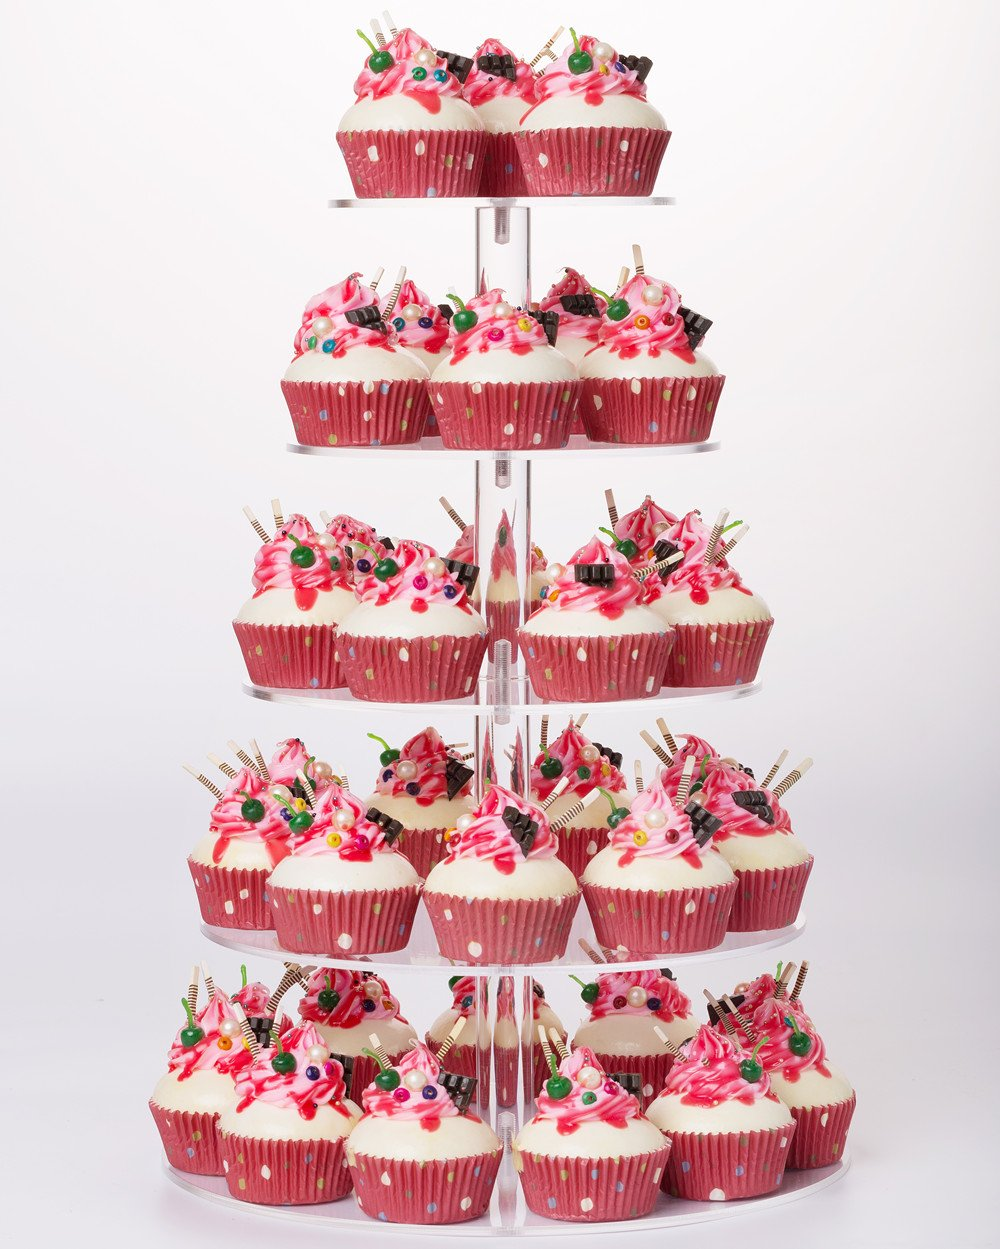 YestBuy 5 Tier Round Wedding Party Acrylic Cake Cupcake Tree Tower Maypole Display Stand 1 pc/Pack